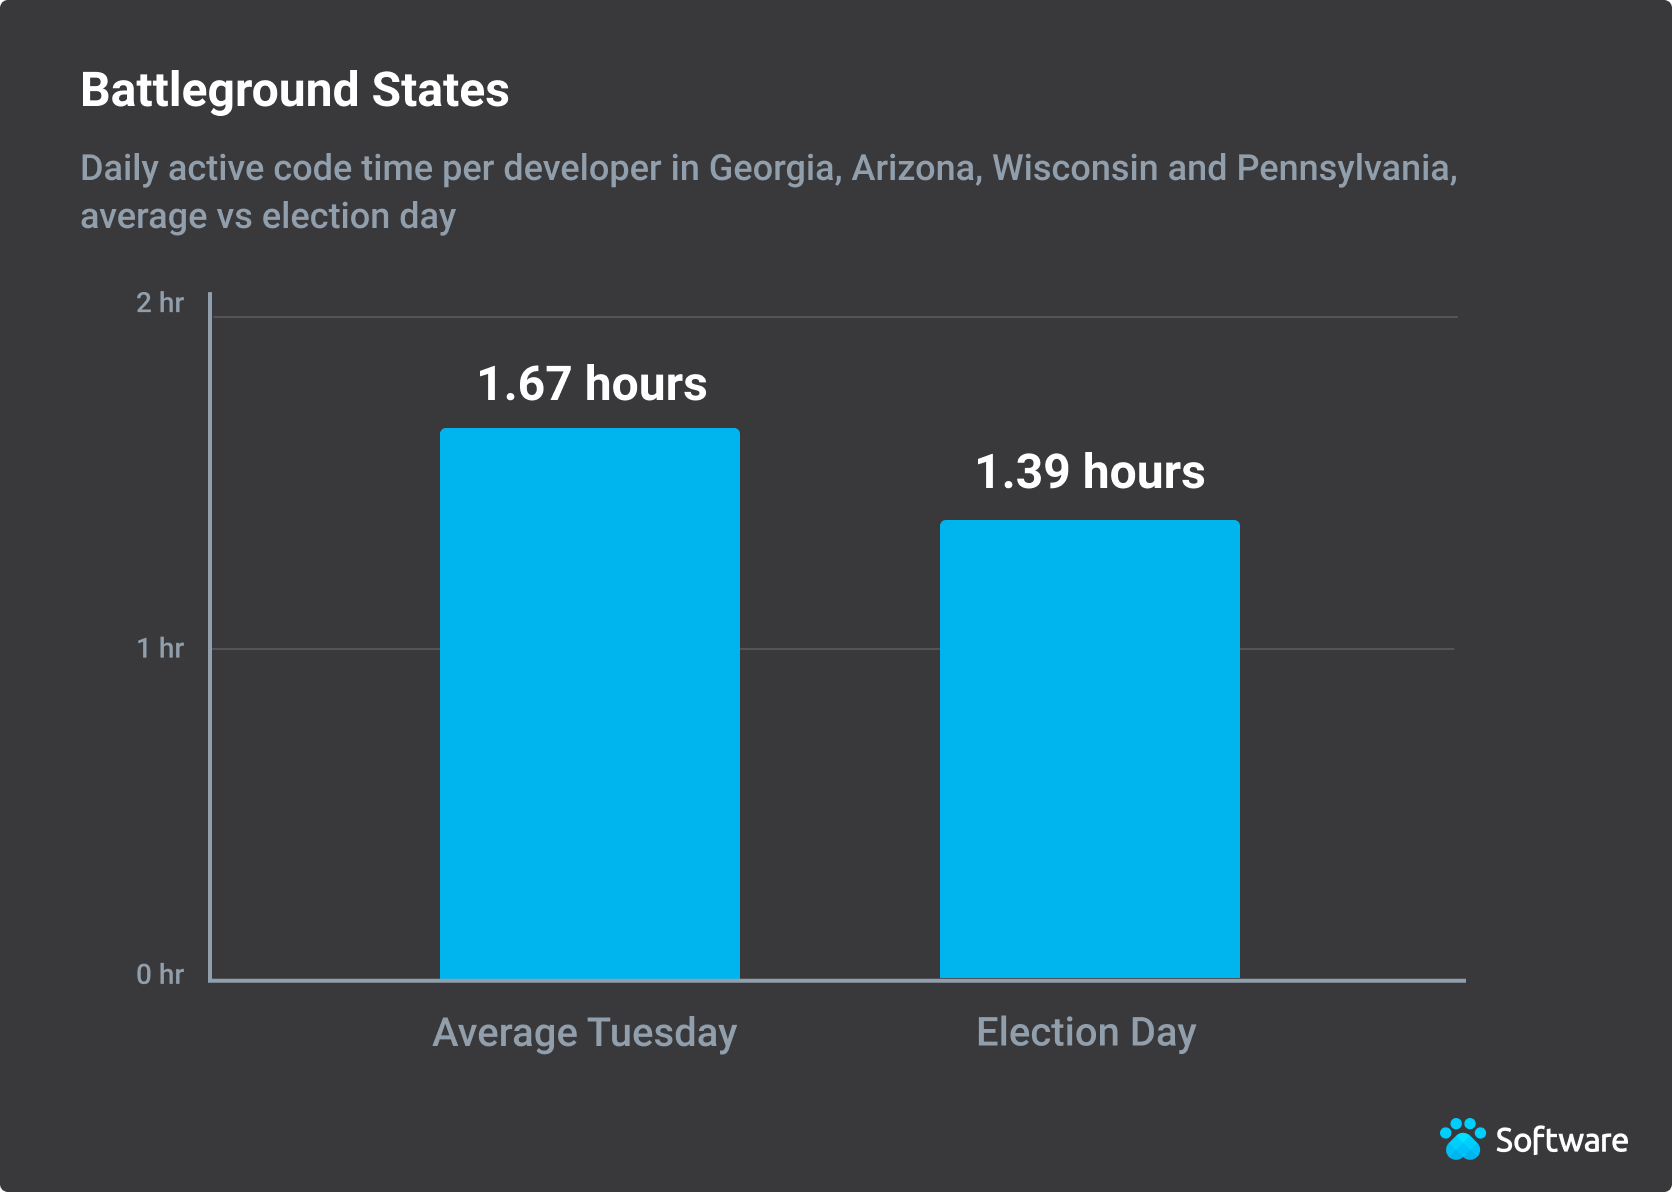 Developers in battleground states on Election Day